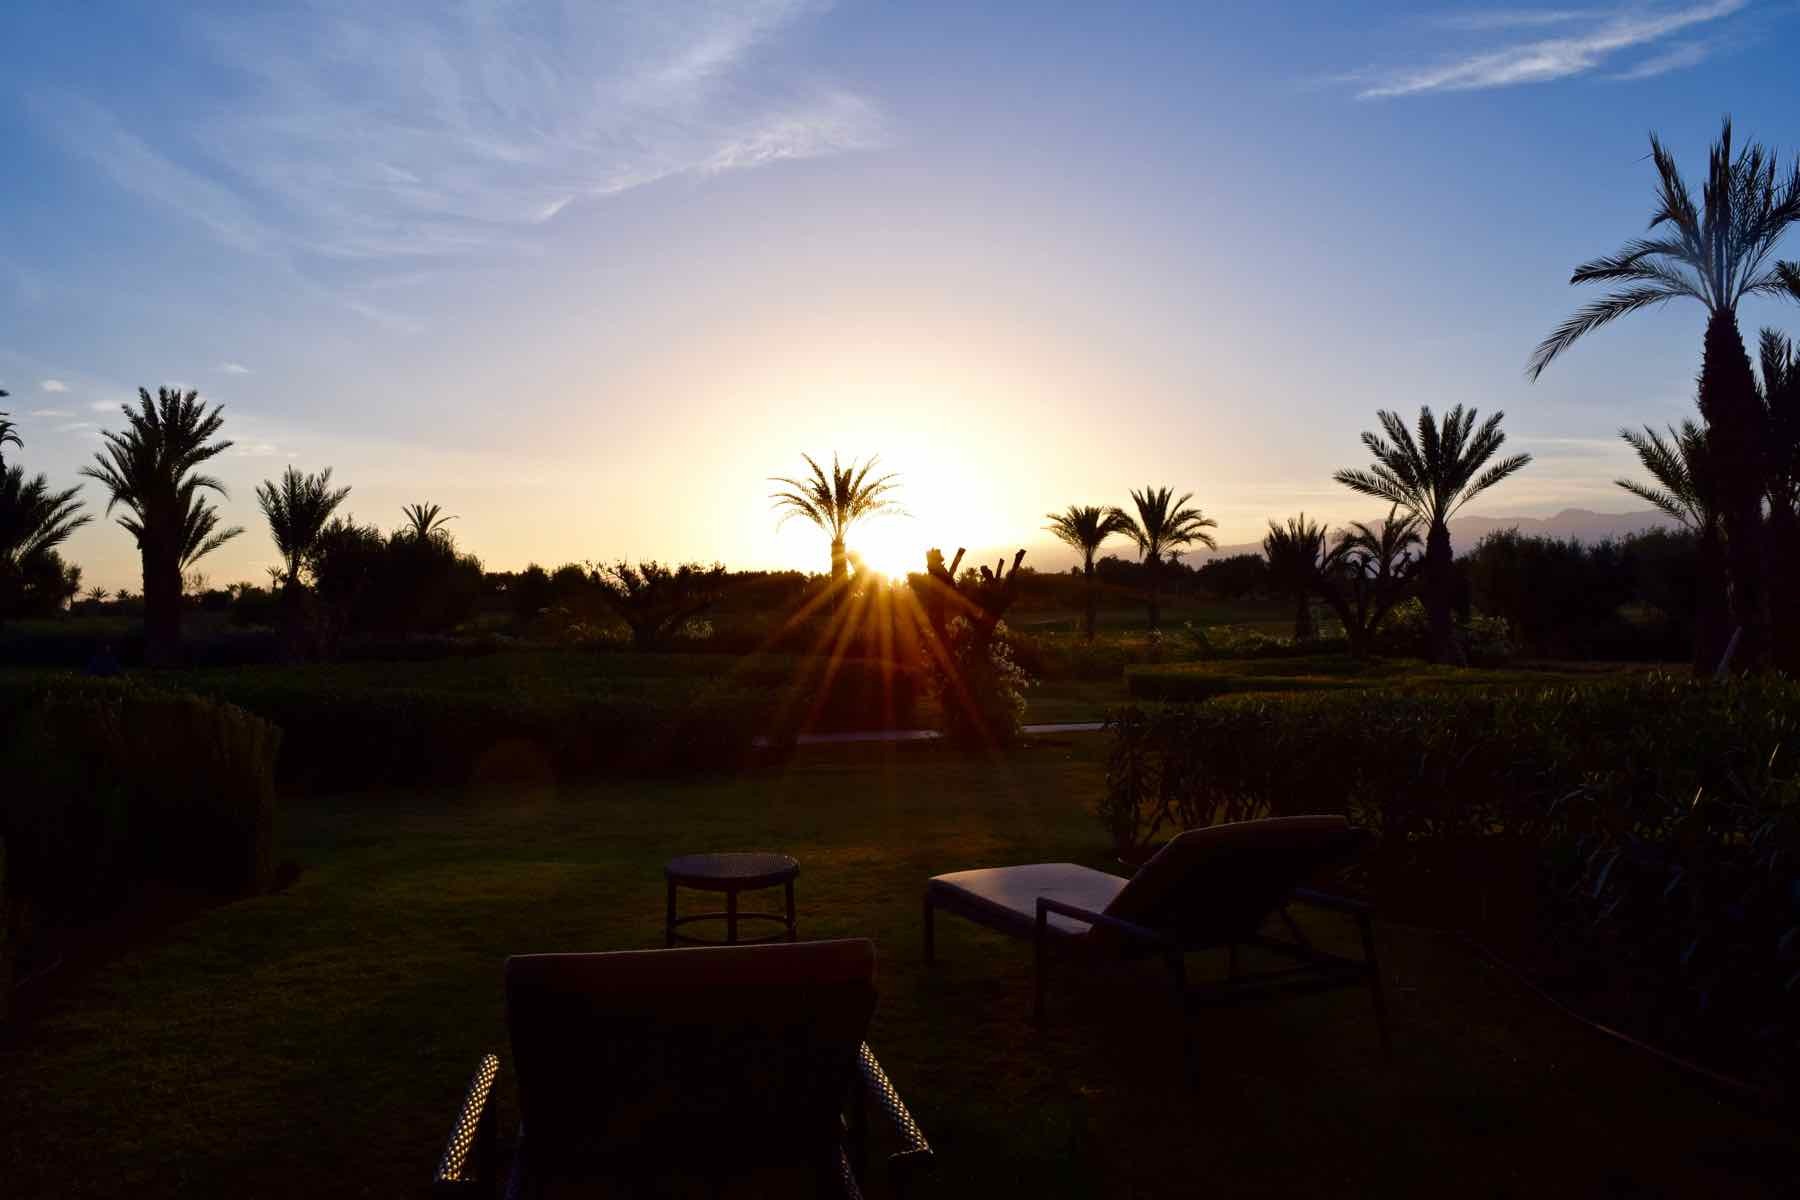 Sunrise at Royal Palm Hotel Marrakech